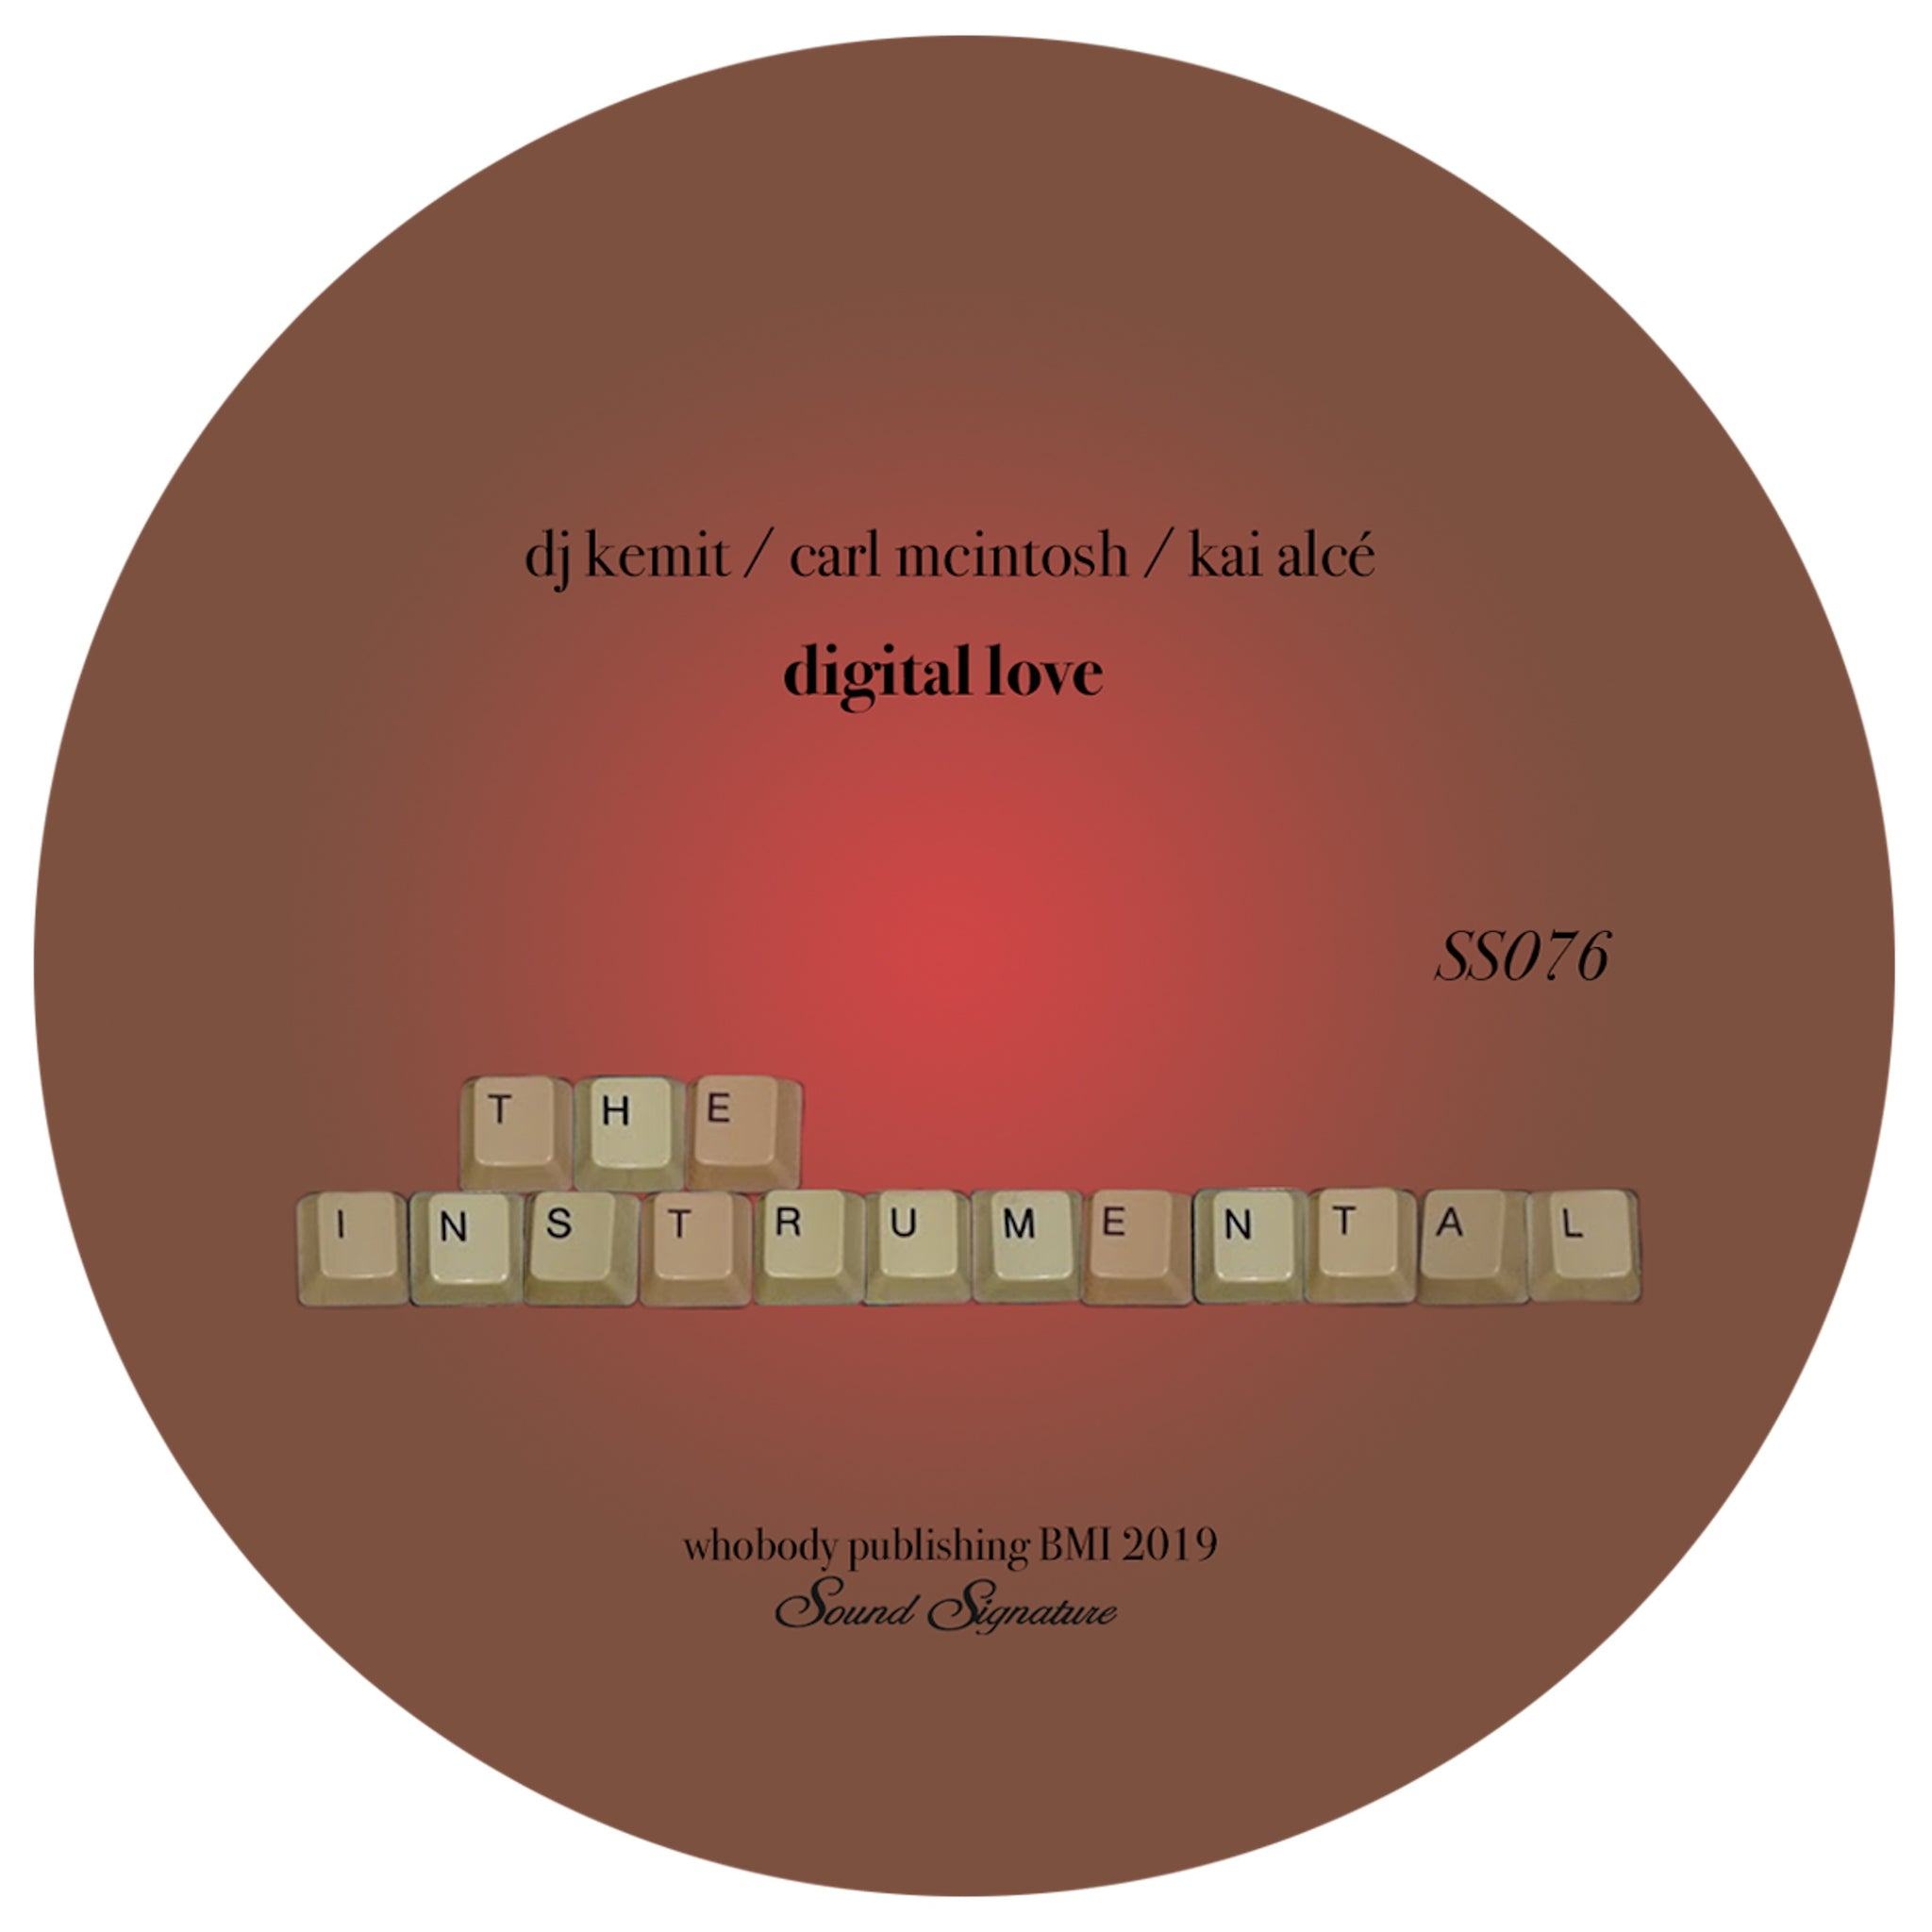 "DJ Kemit / Carl McIntosh / Kai Alcé ‎– Digital Love (Remix) 12"" - Vinylhouse"